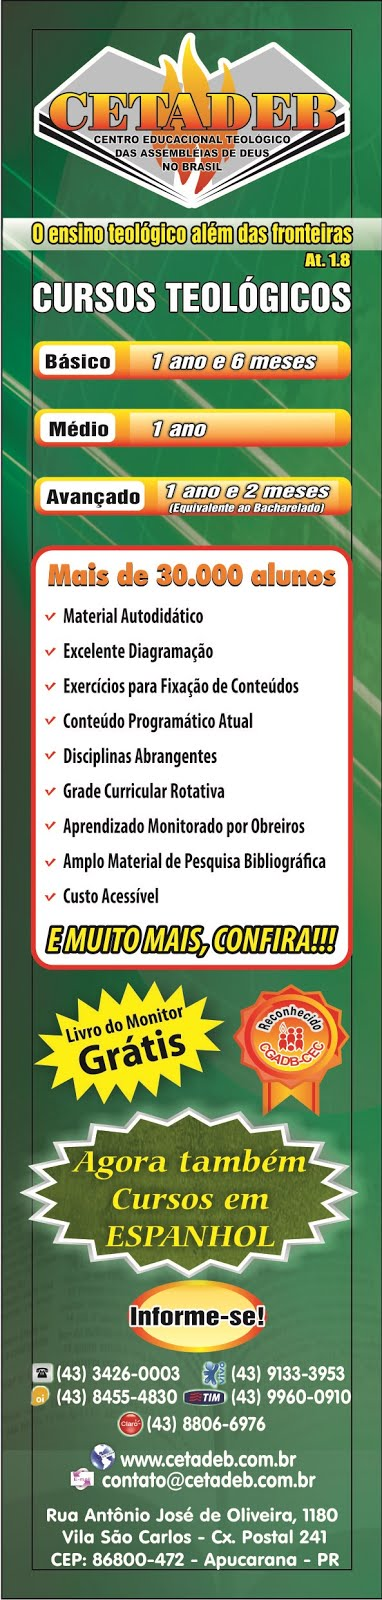 Faça um curso teológico